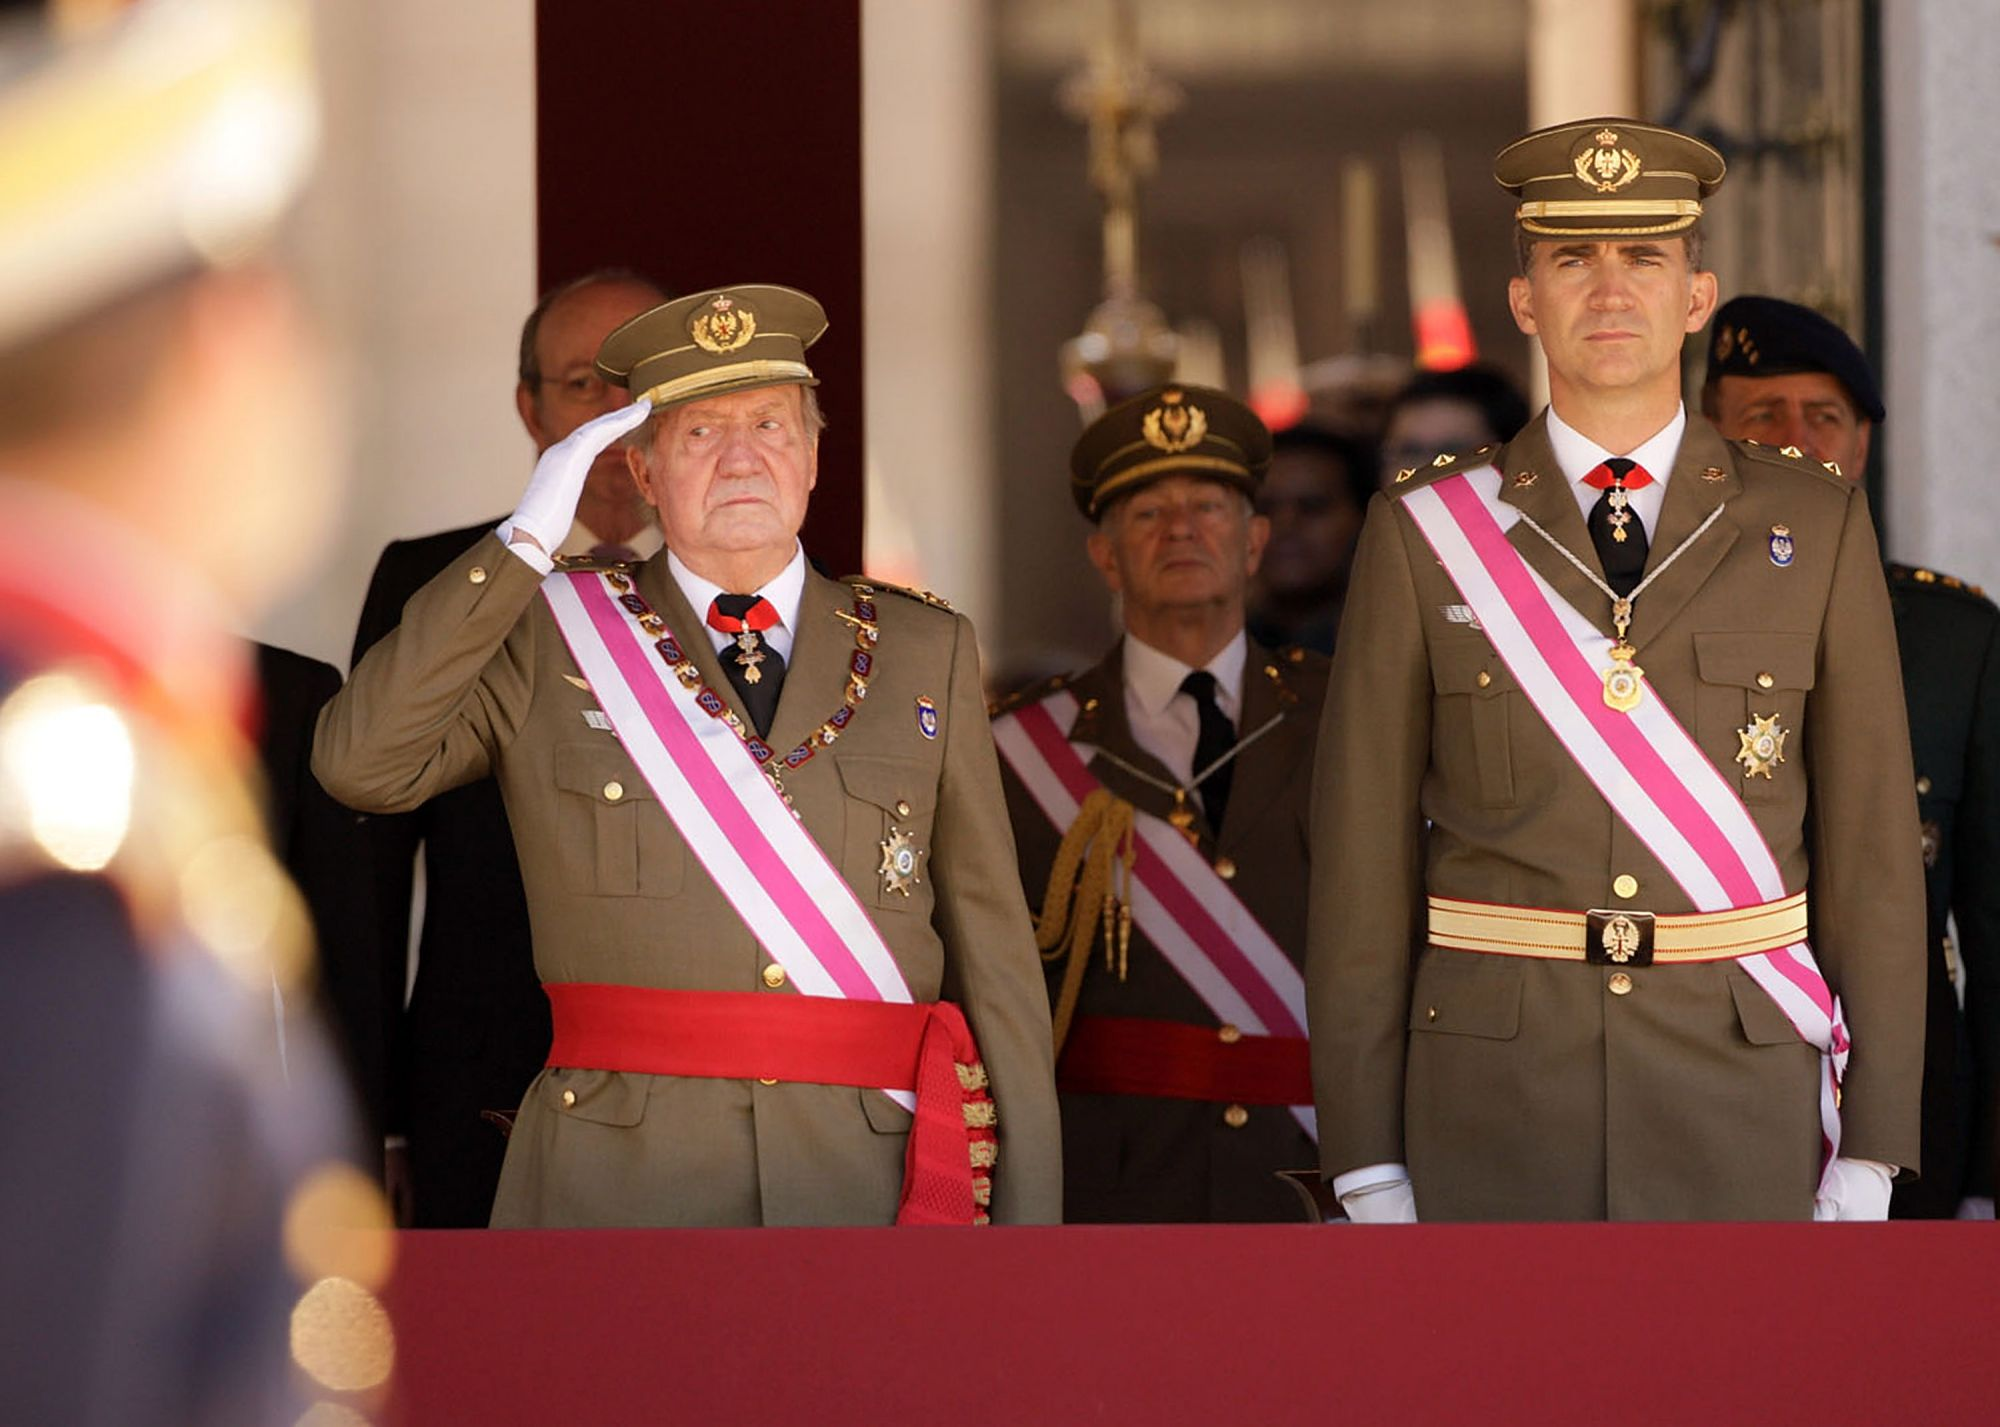 EL ESCORIAL, SPAIN - JUNE 03:  King Juan Carlos of Spain and Prince Felipe of Spain attend the biannual meeting of San Hermenegildo Order  on June 3, 2014 in El Escorial, Spain.  (Photo by Europa Press/Europa Press via Getty Images)